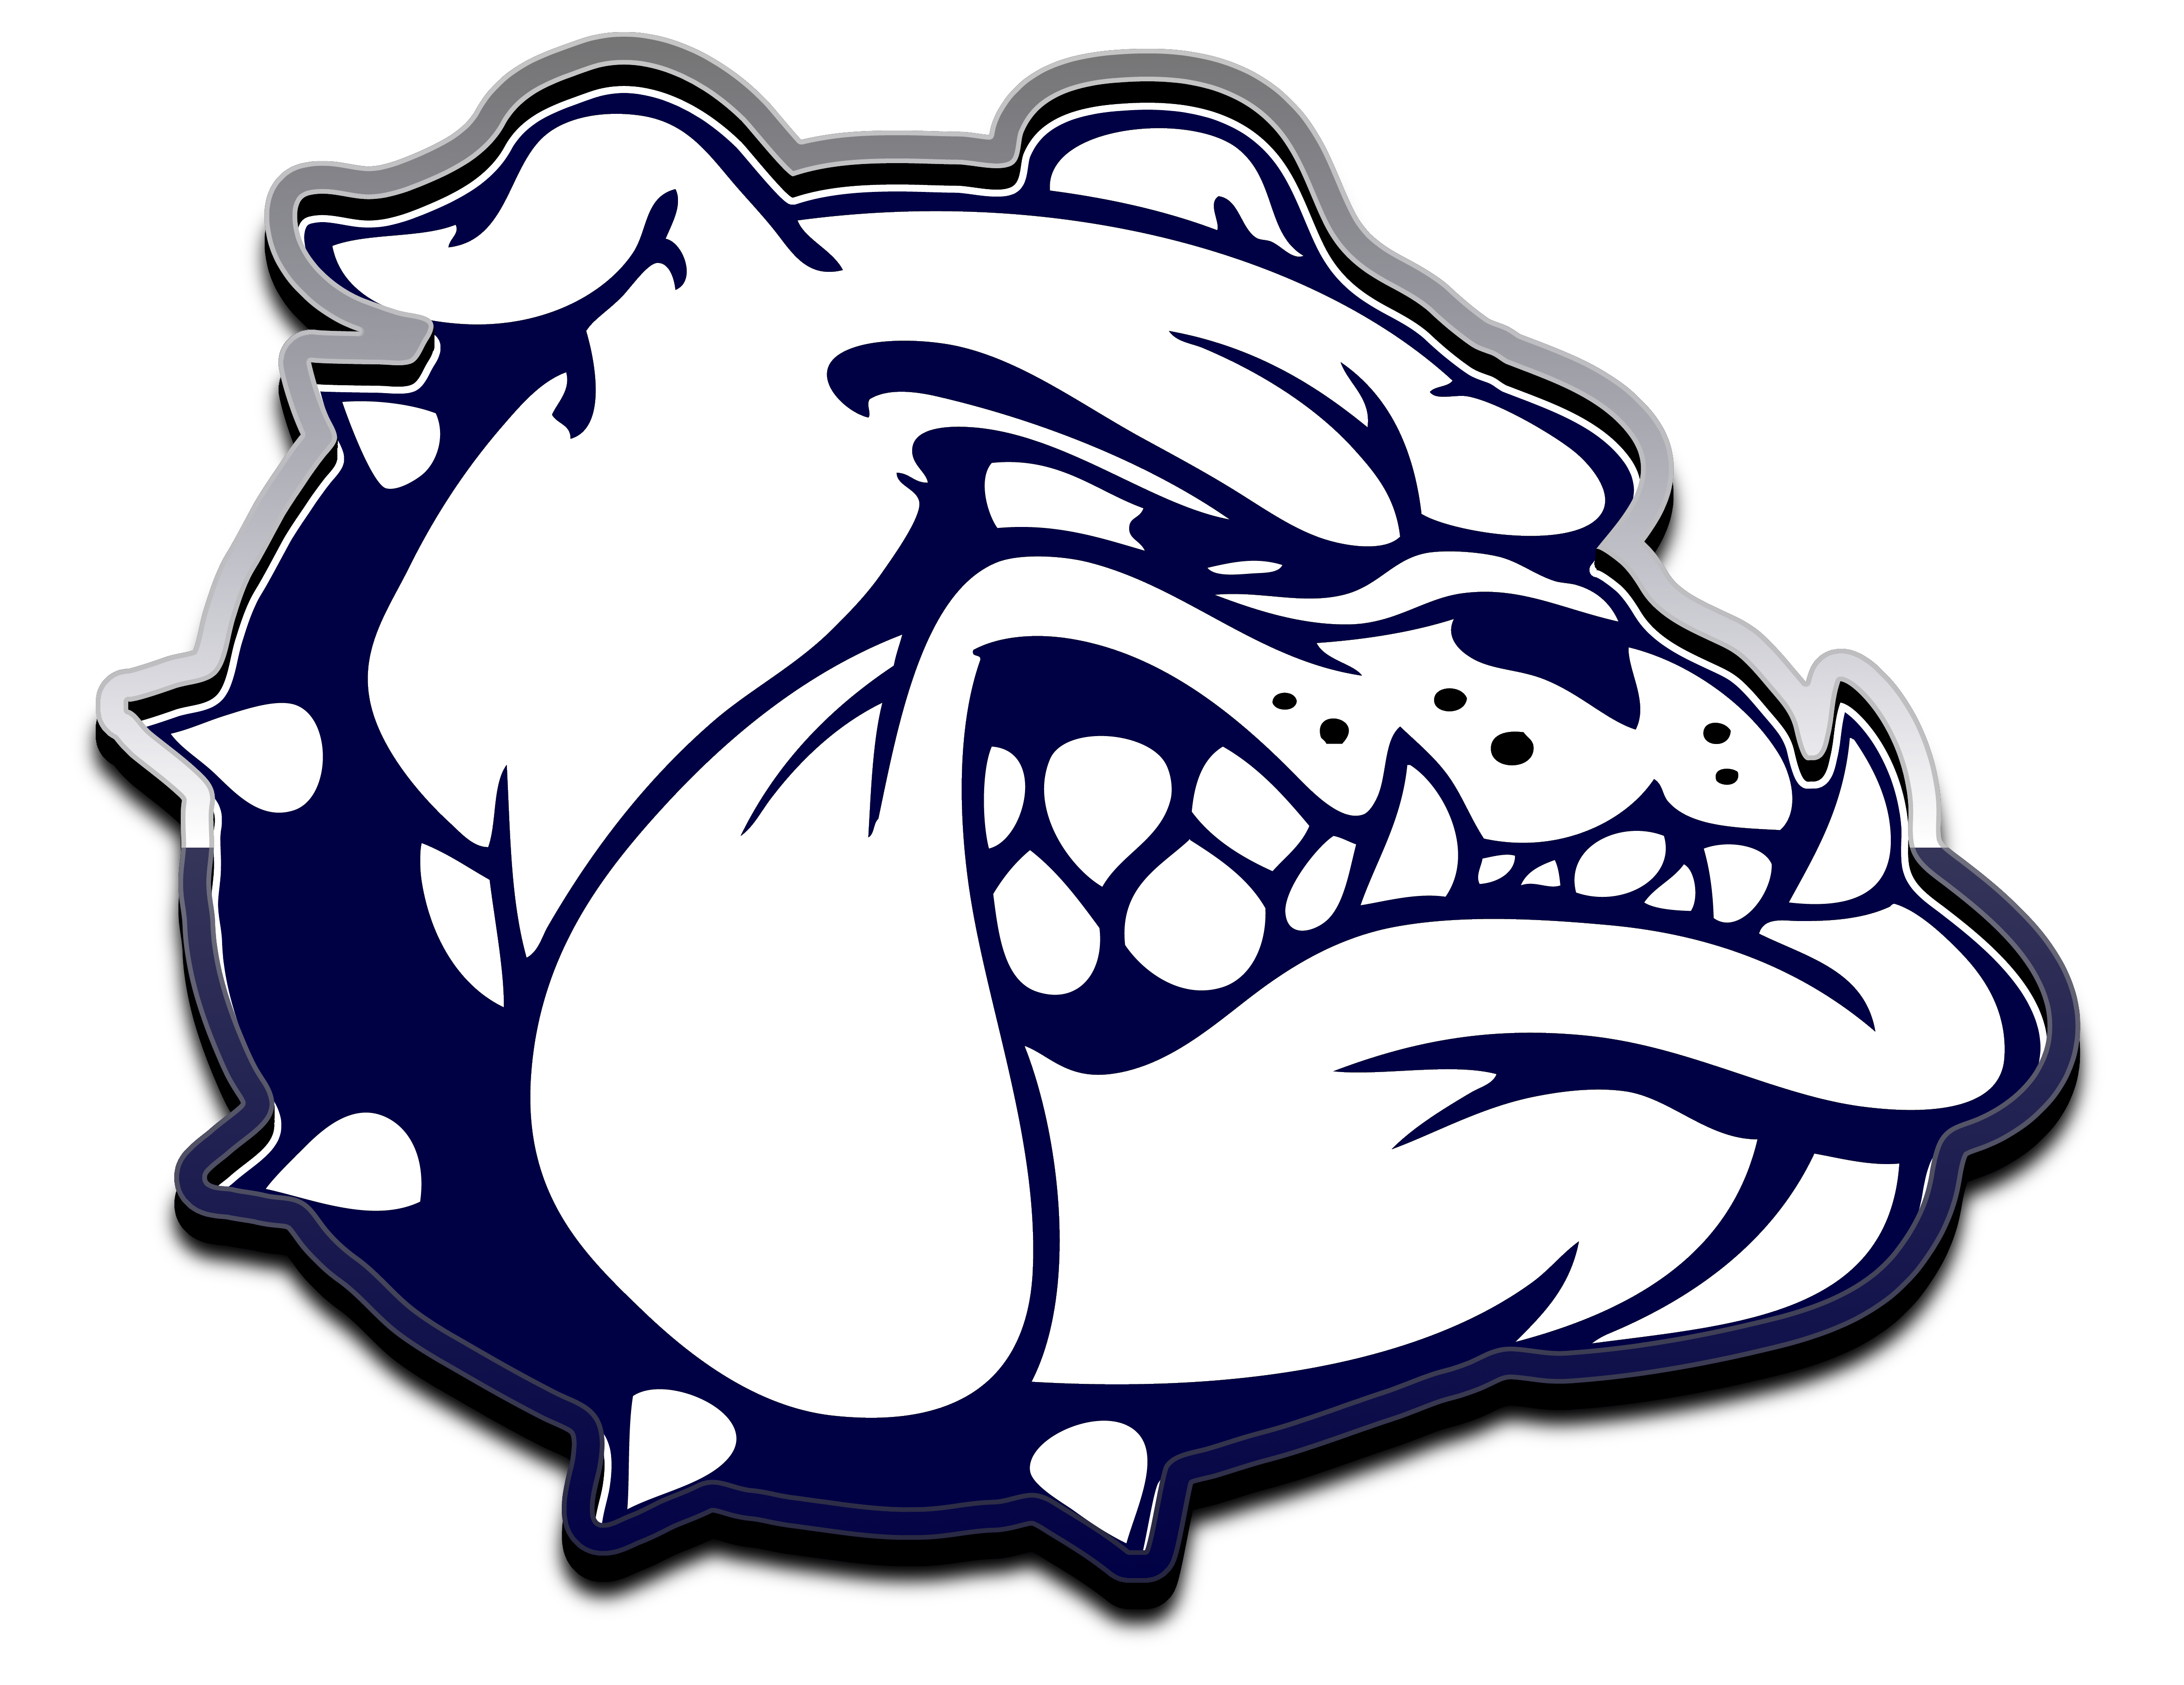 Bulldog football mascot clipart stock The Berwick Area Bulldogs - ScoreStream stock